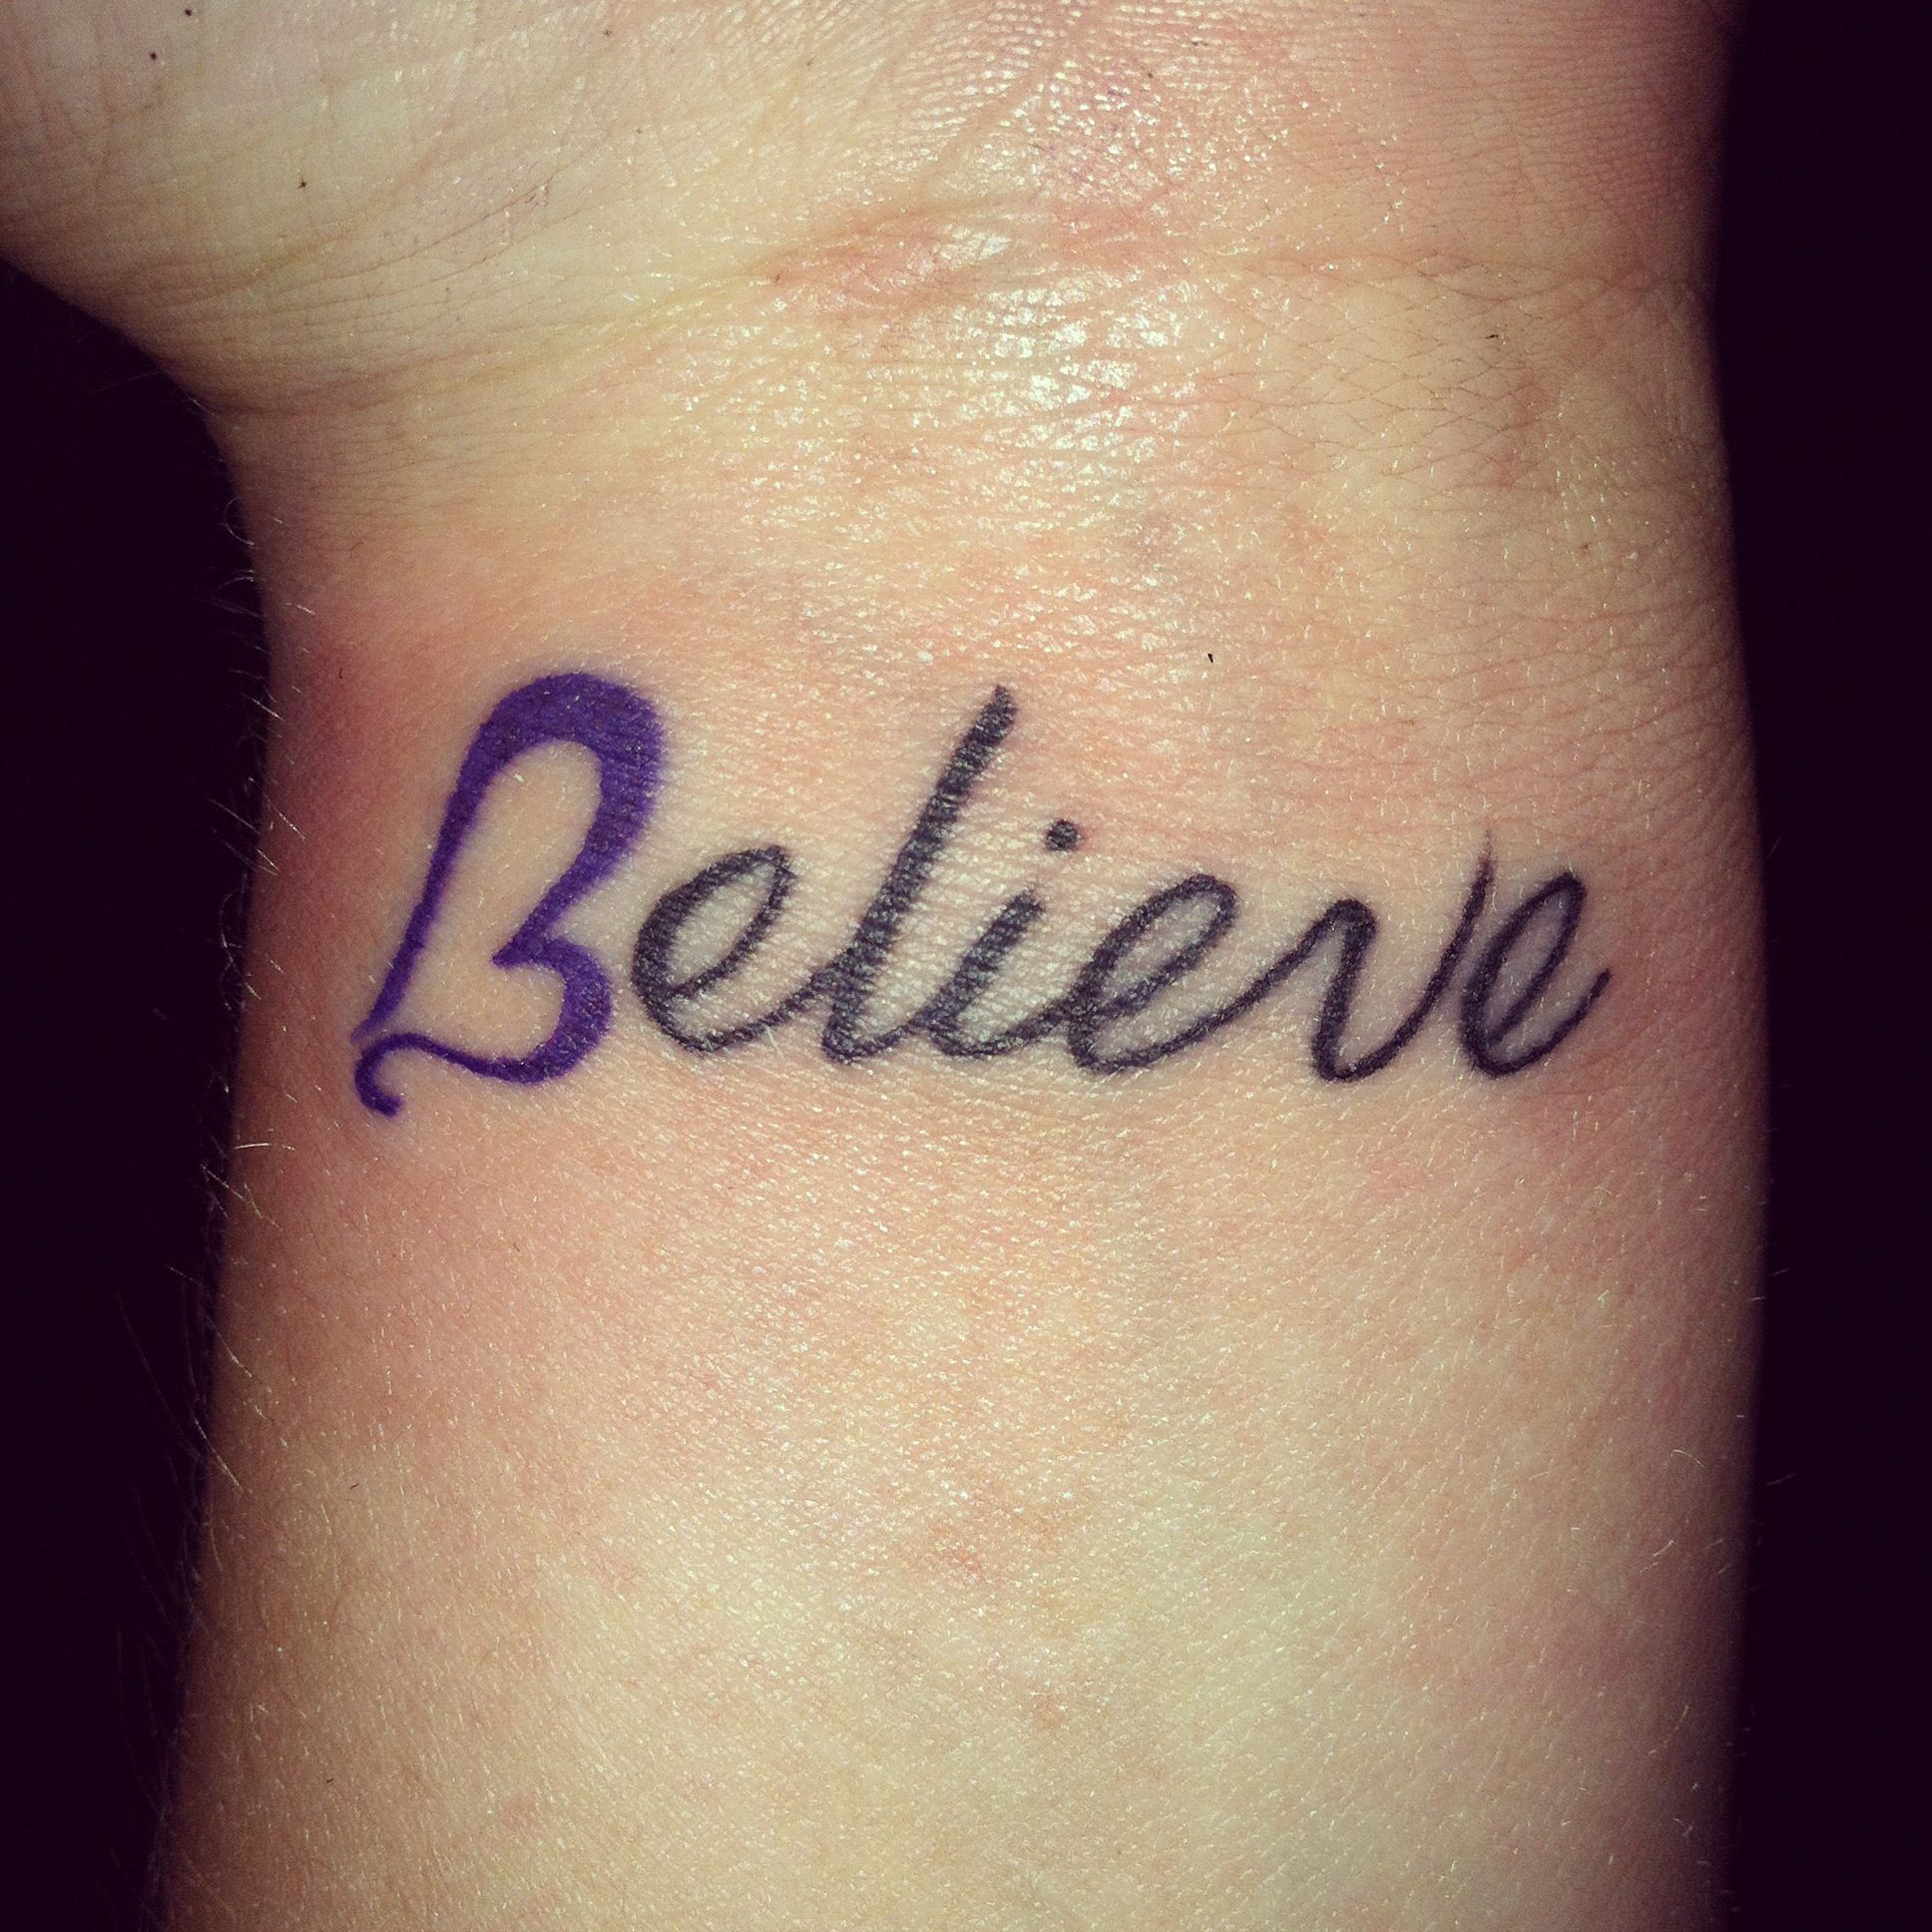 Believe with the B as a heart